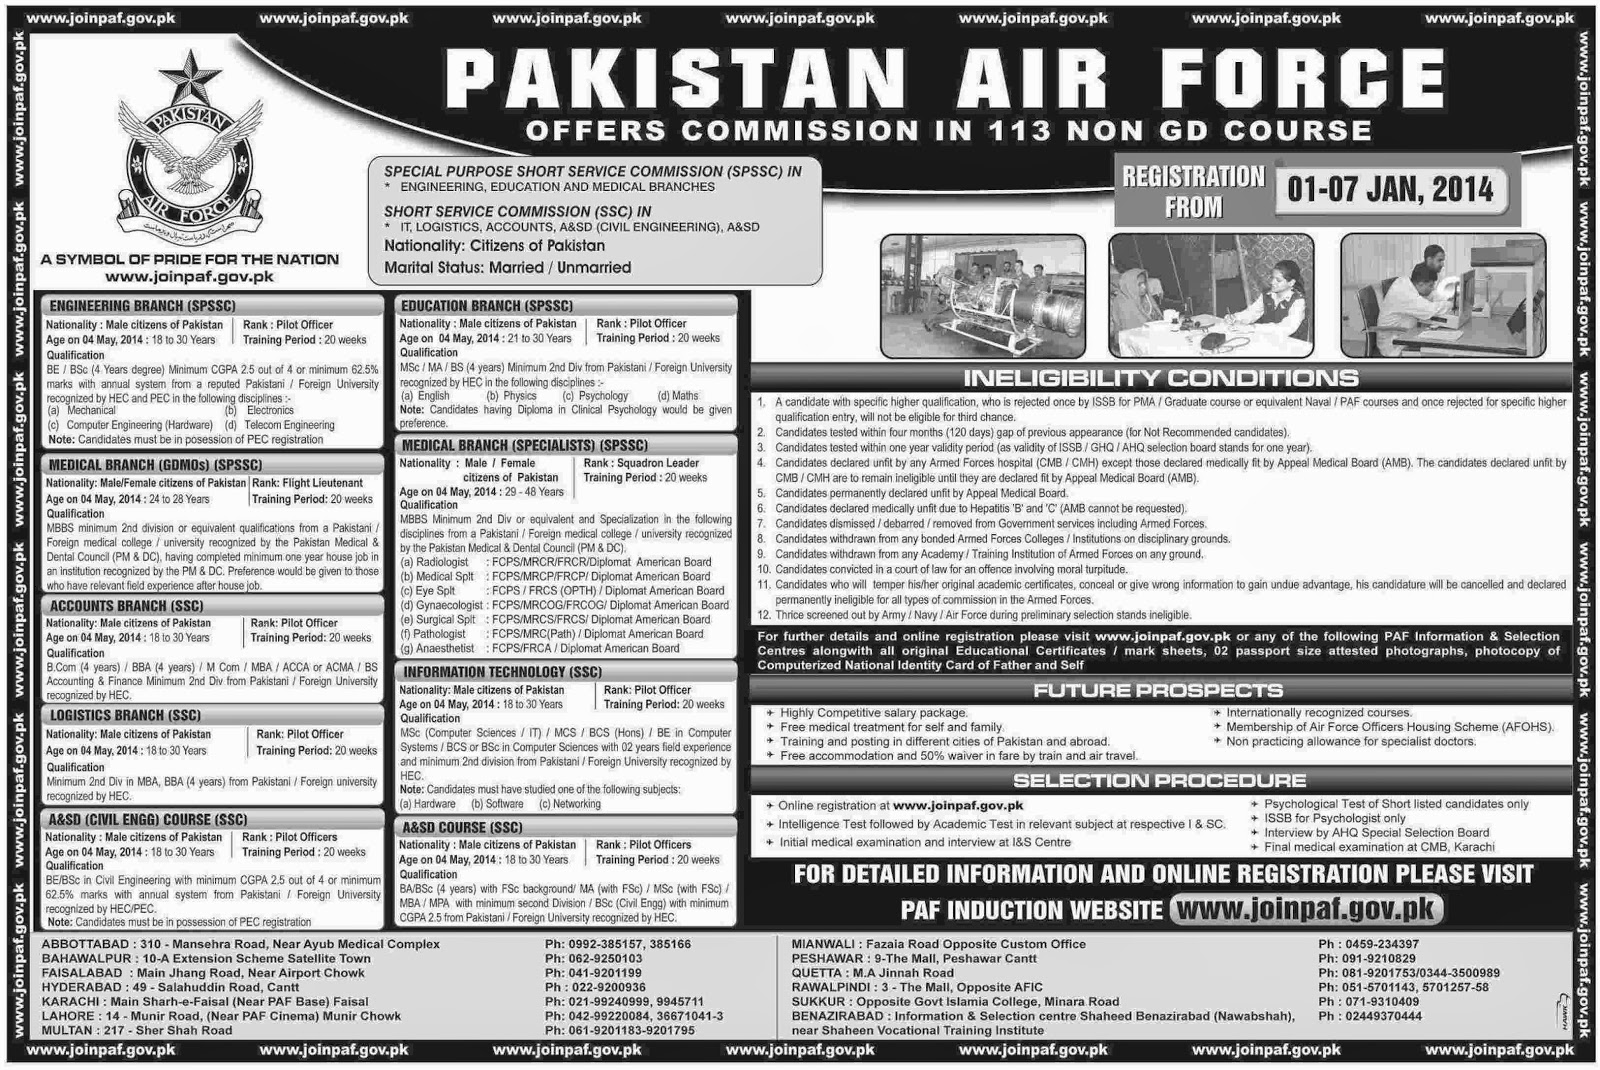 PAF 113 Non GD Course Officers Commission 2014